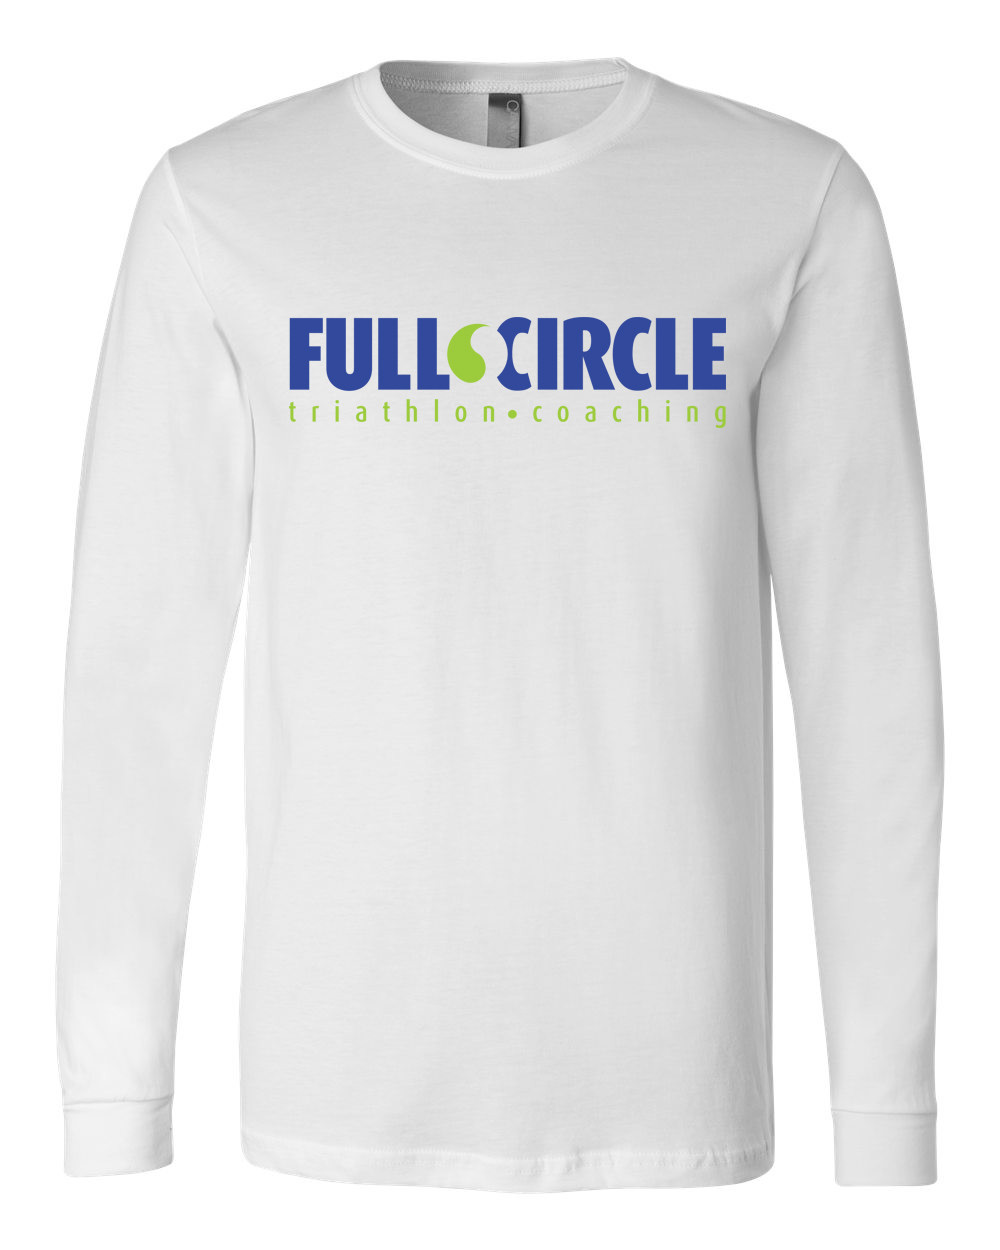 Ladies Long Sleeve WHITE Tee